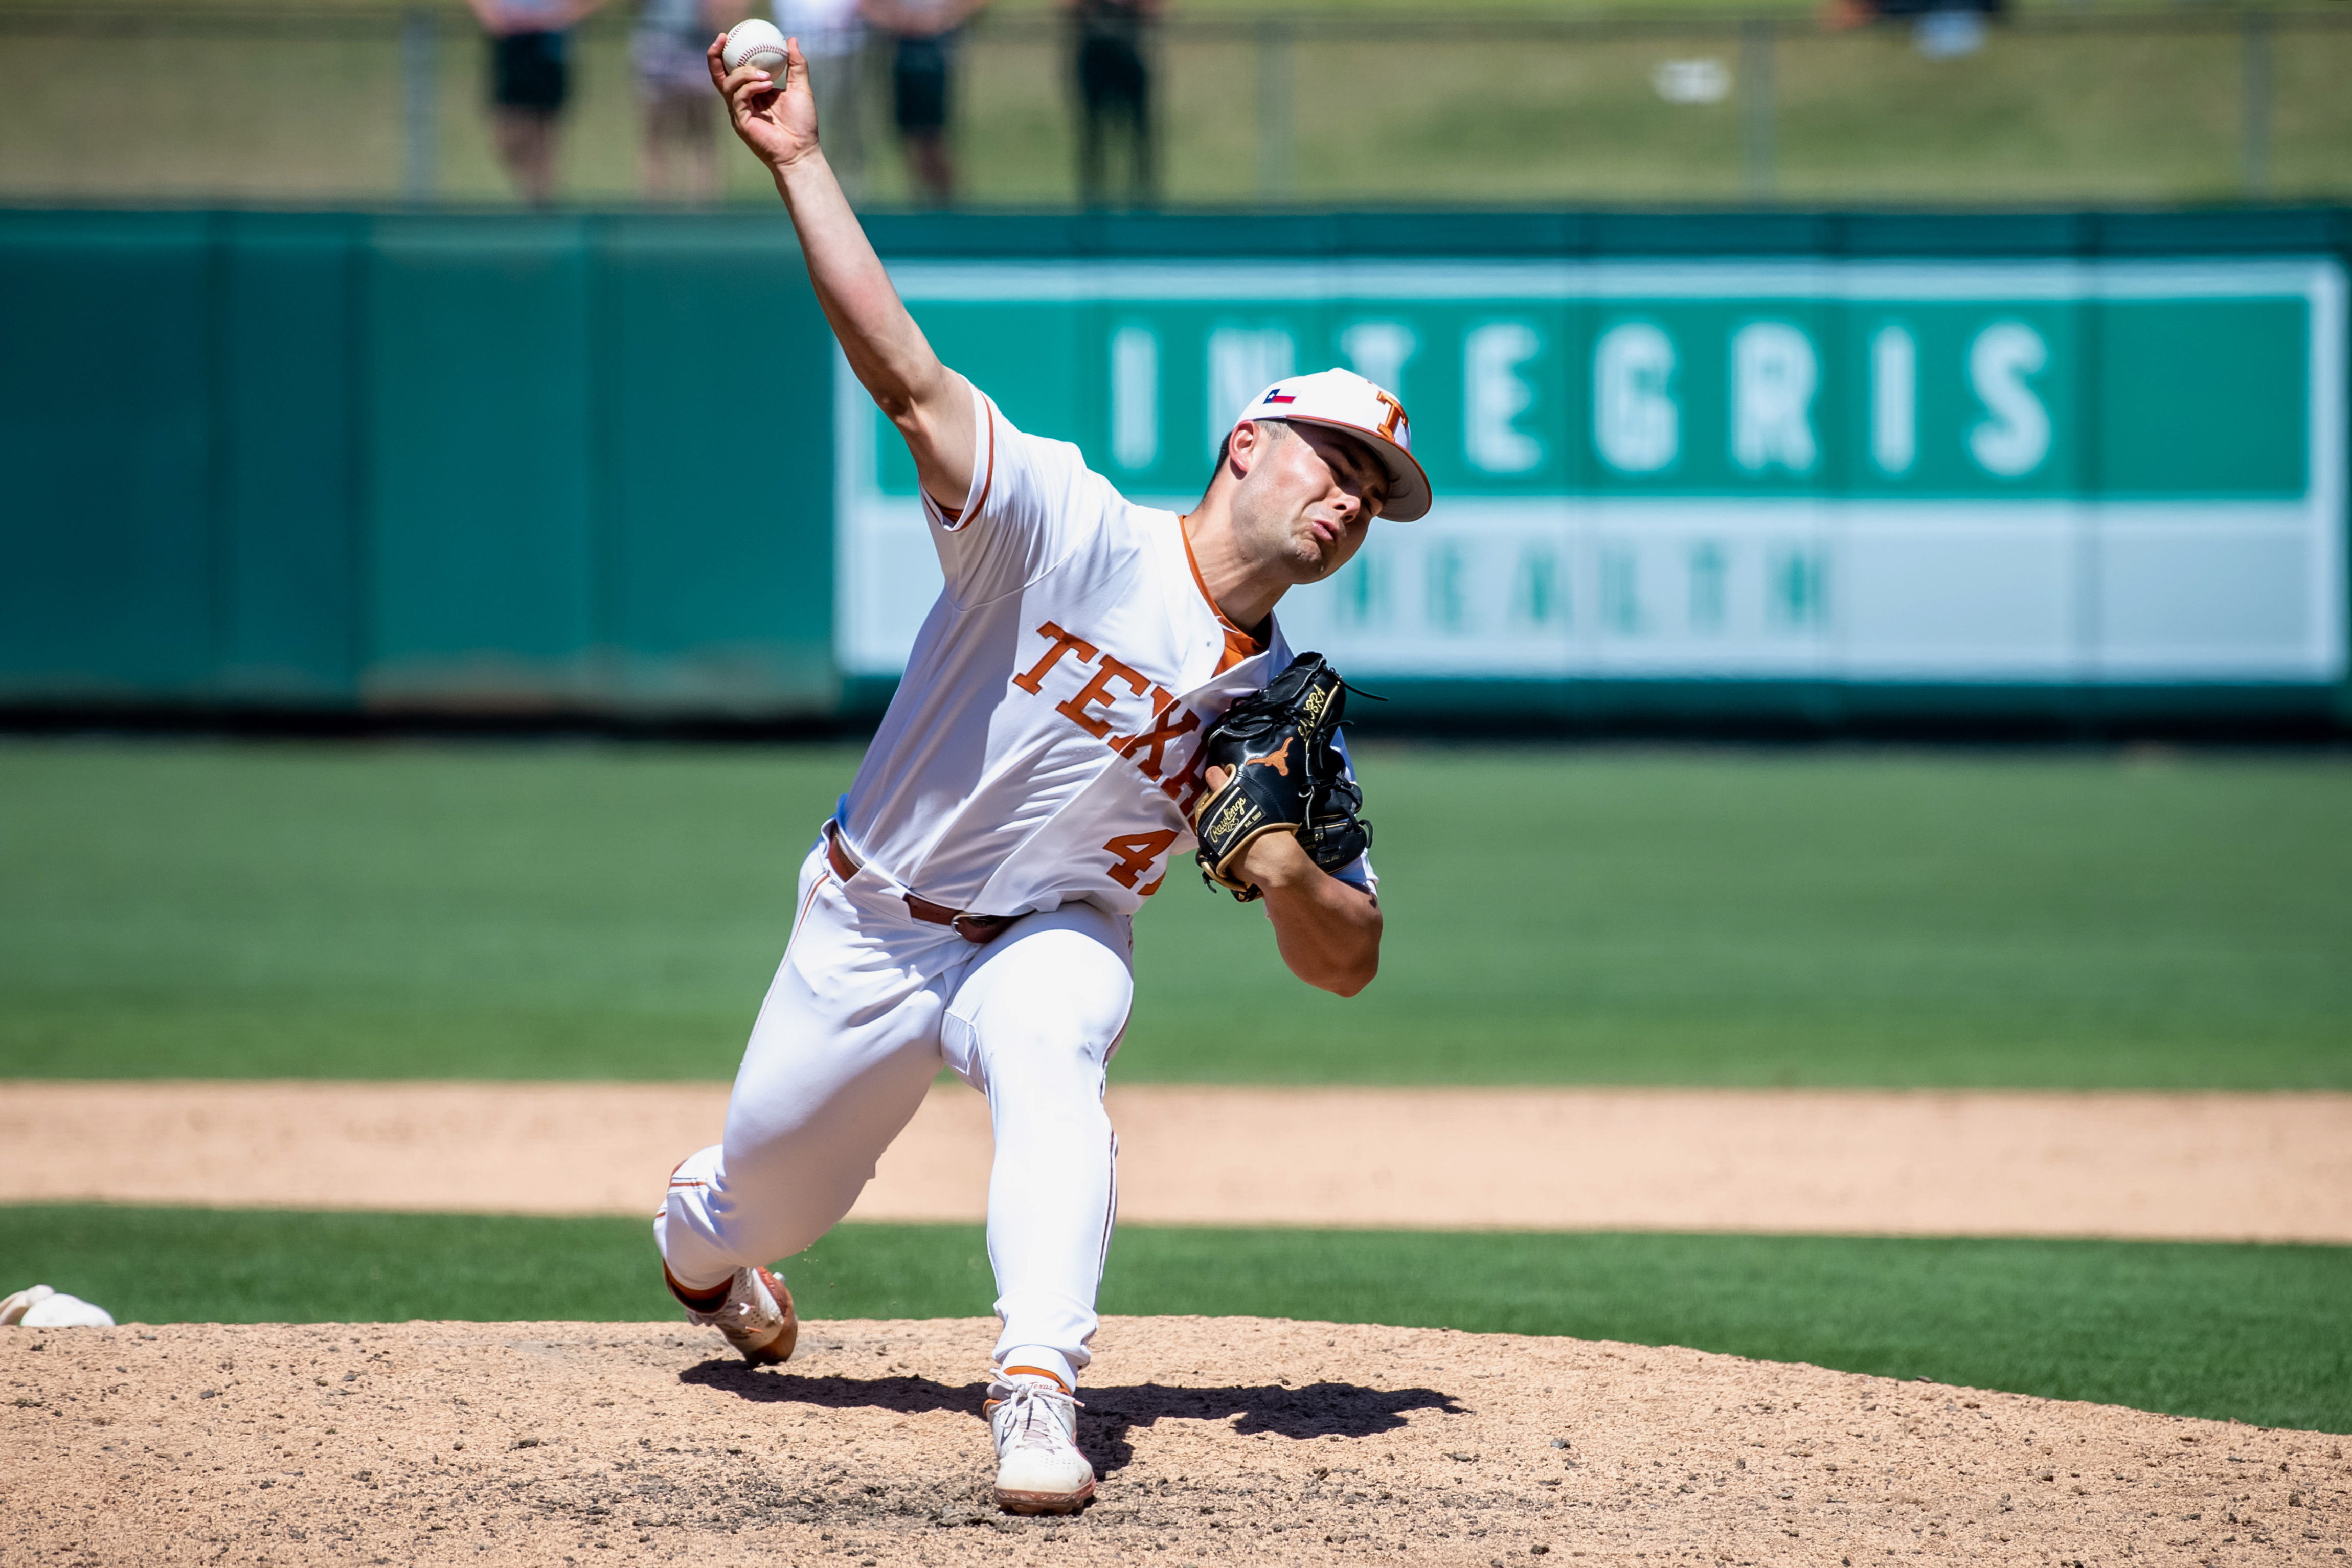 Texas Longhorns pitcher Aaron Nixon (41) throws against the Oklahoma State Cowboys during the Big 12 Conference Baseball Tournament at Chickasaw Bricktown Ballpark.